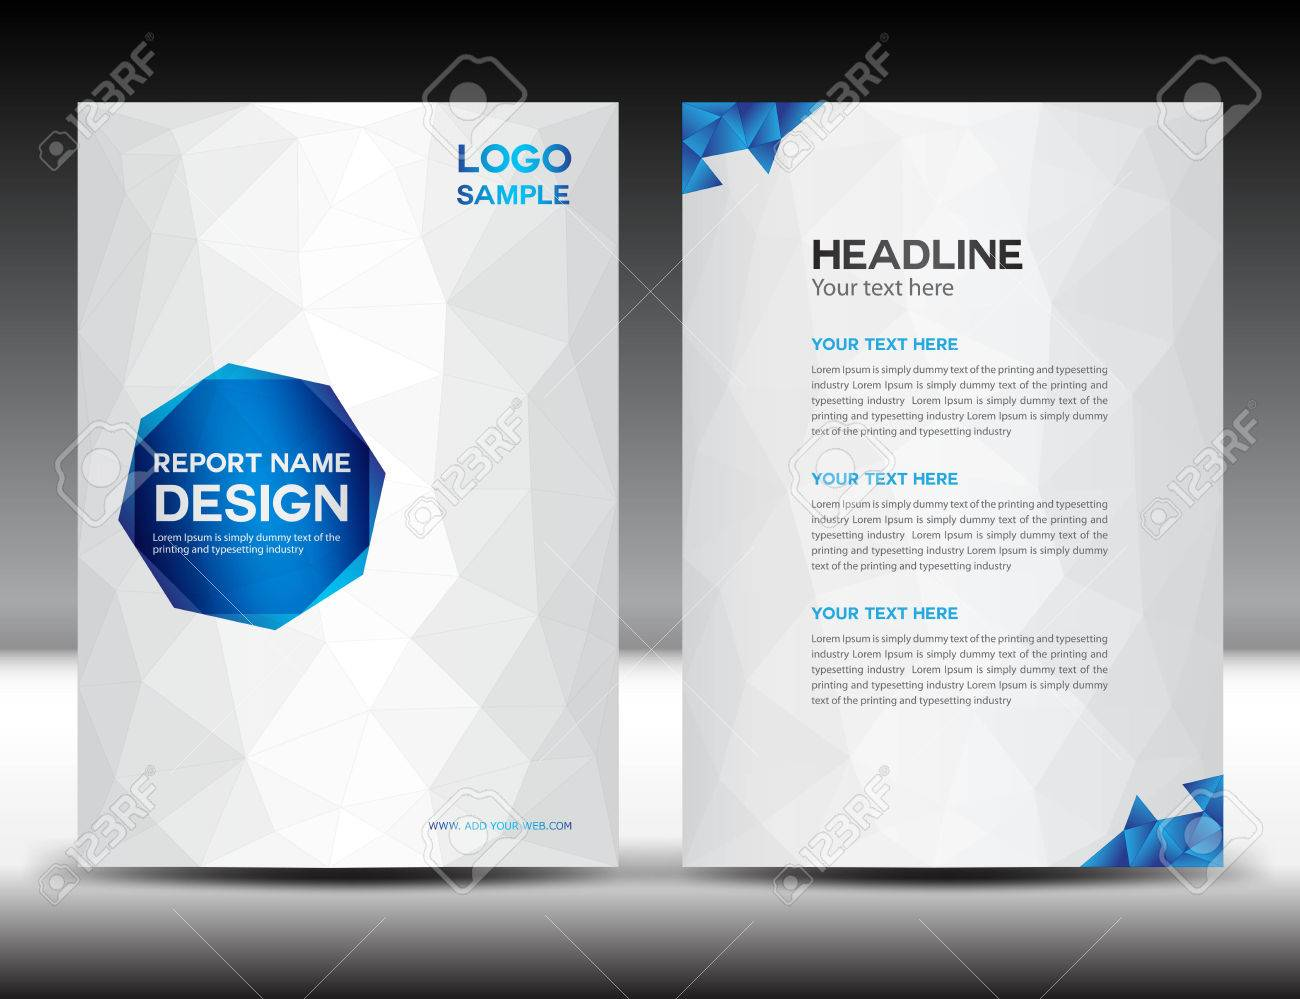 white cover annual report template polygon background brochure vector white cover annual report template polygon background brochure design cover template flyer design portfolio yellow background info graphics front